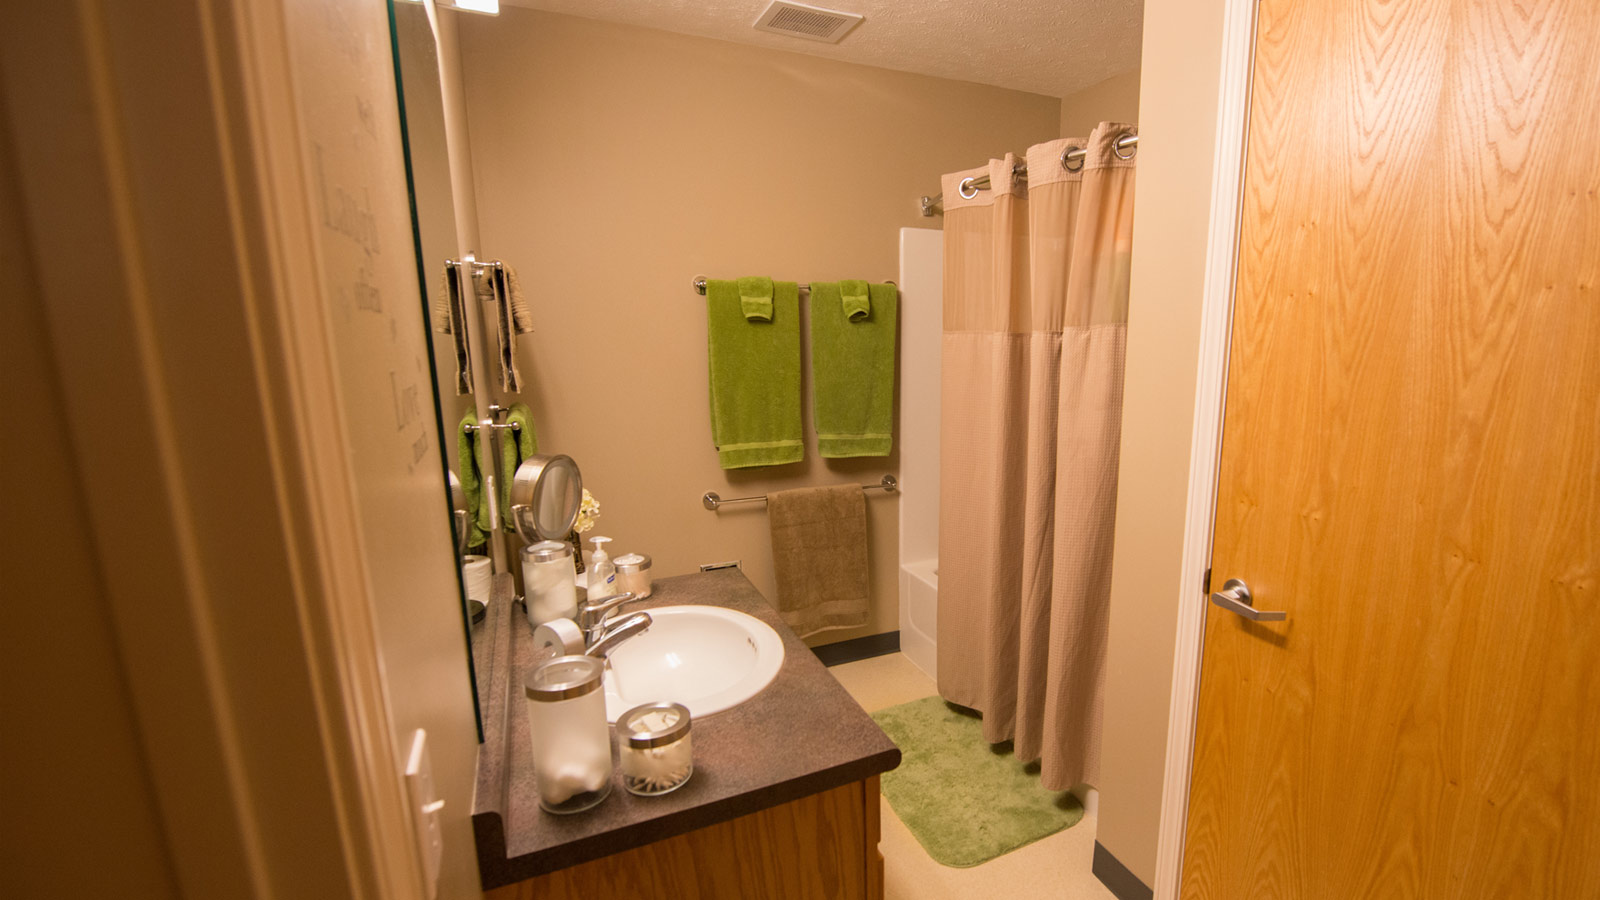 Bathroom Example 2 photo